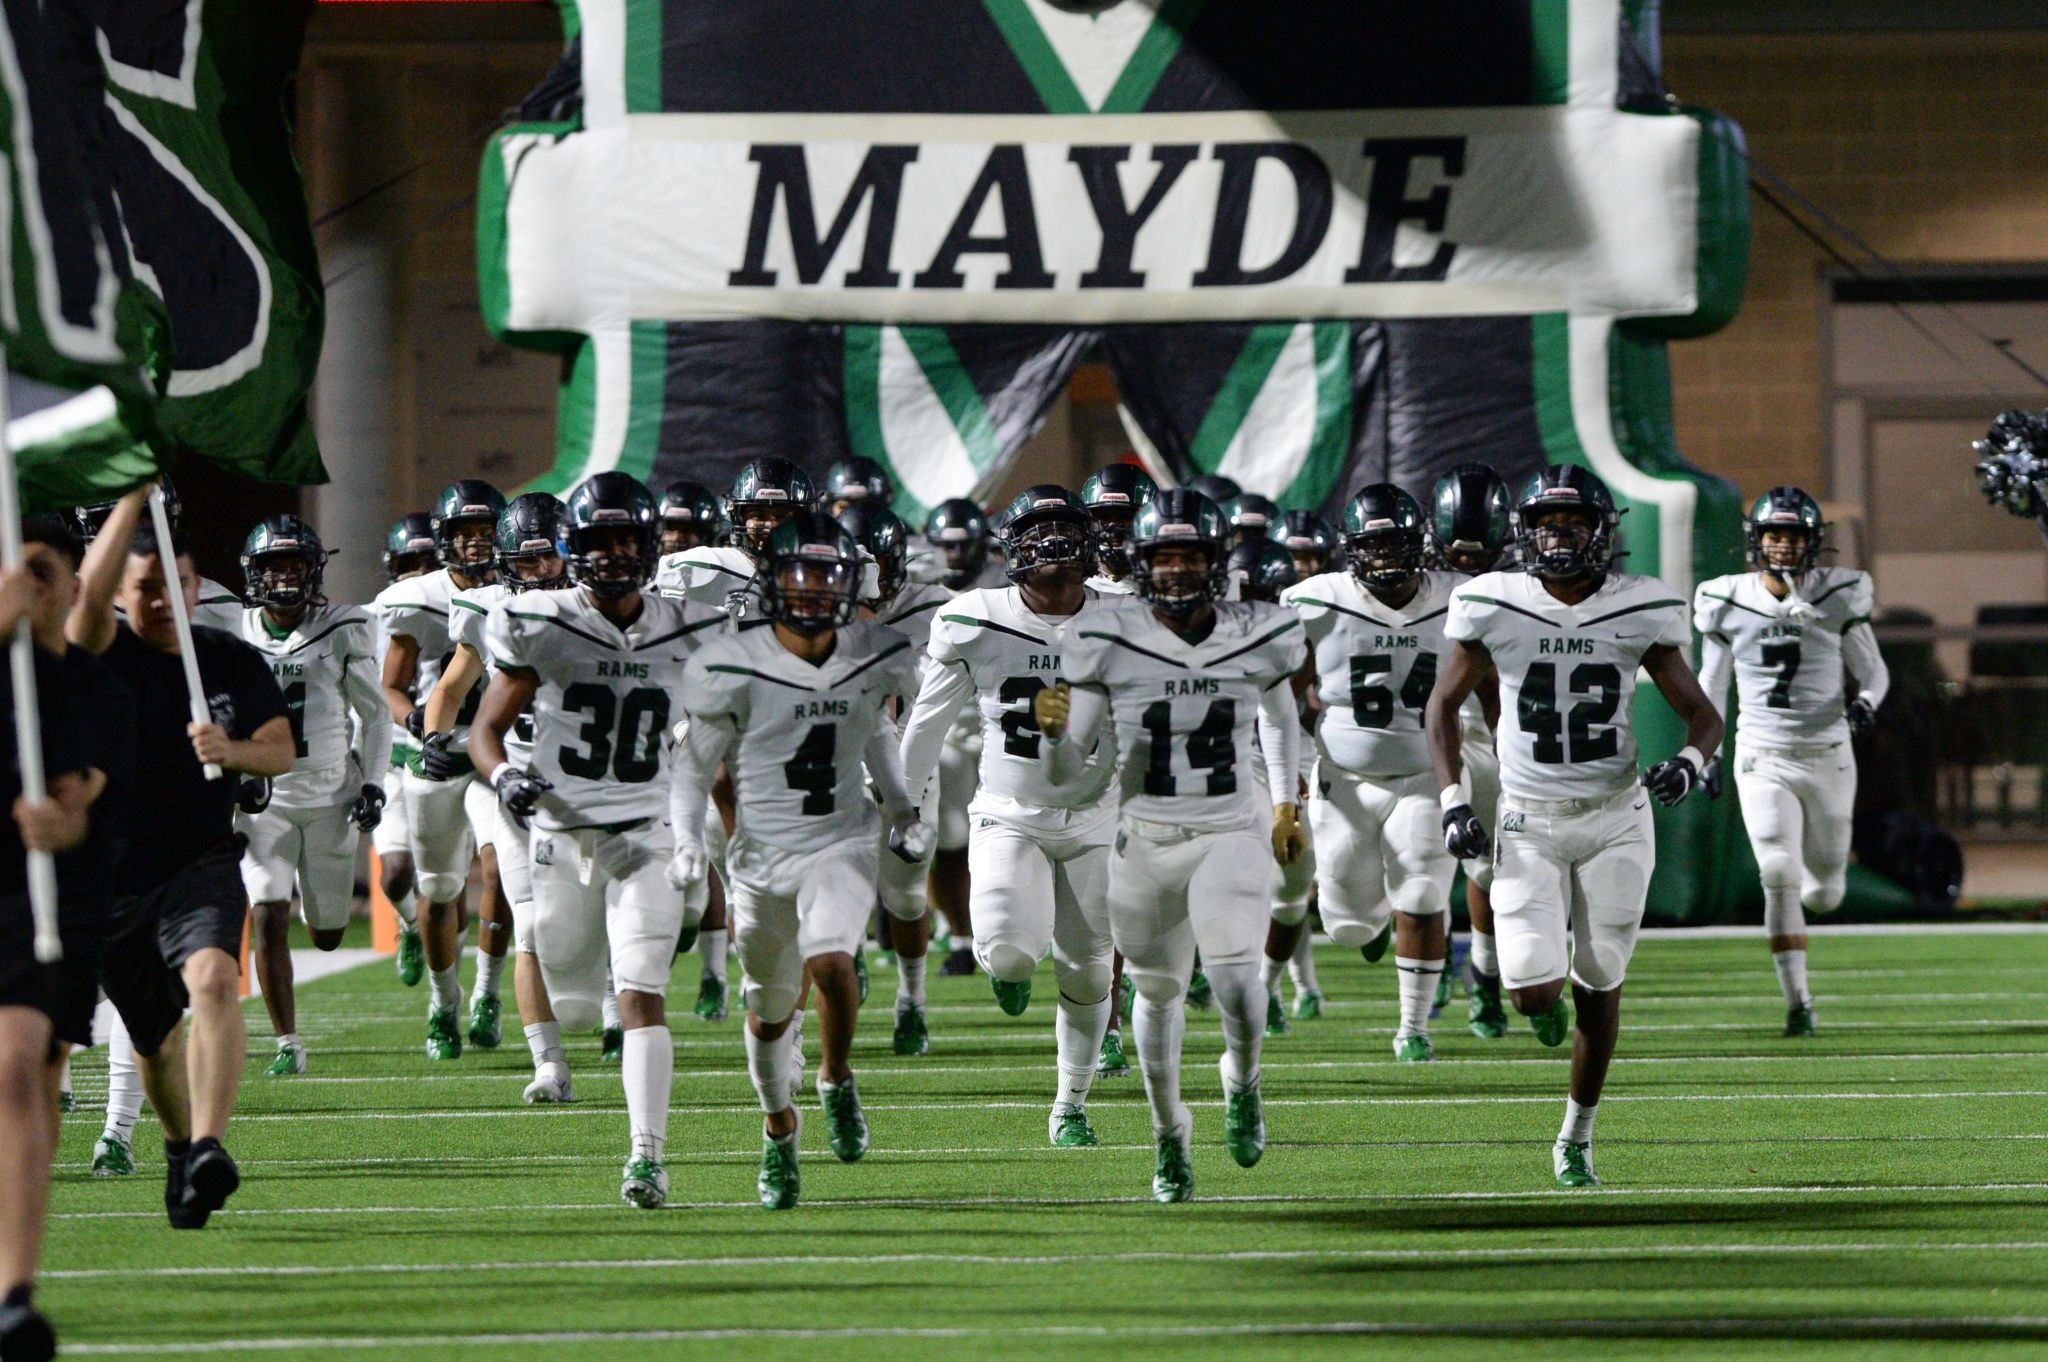 Mayde Creek knocks off Bush to notch first playoff victory in 22 years